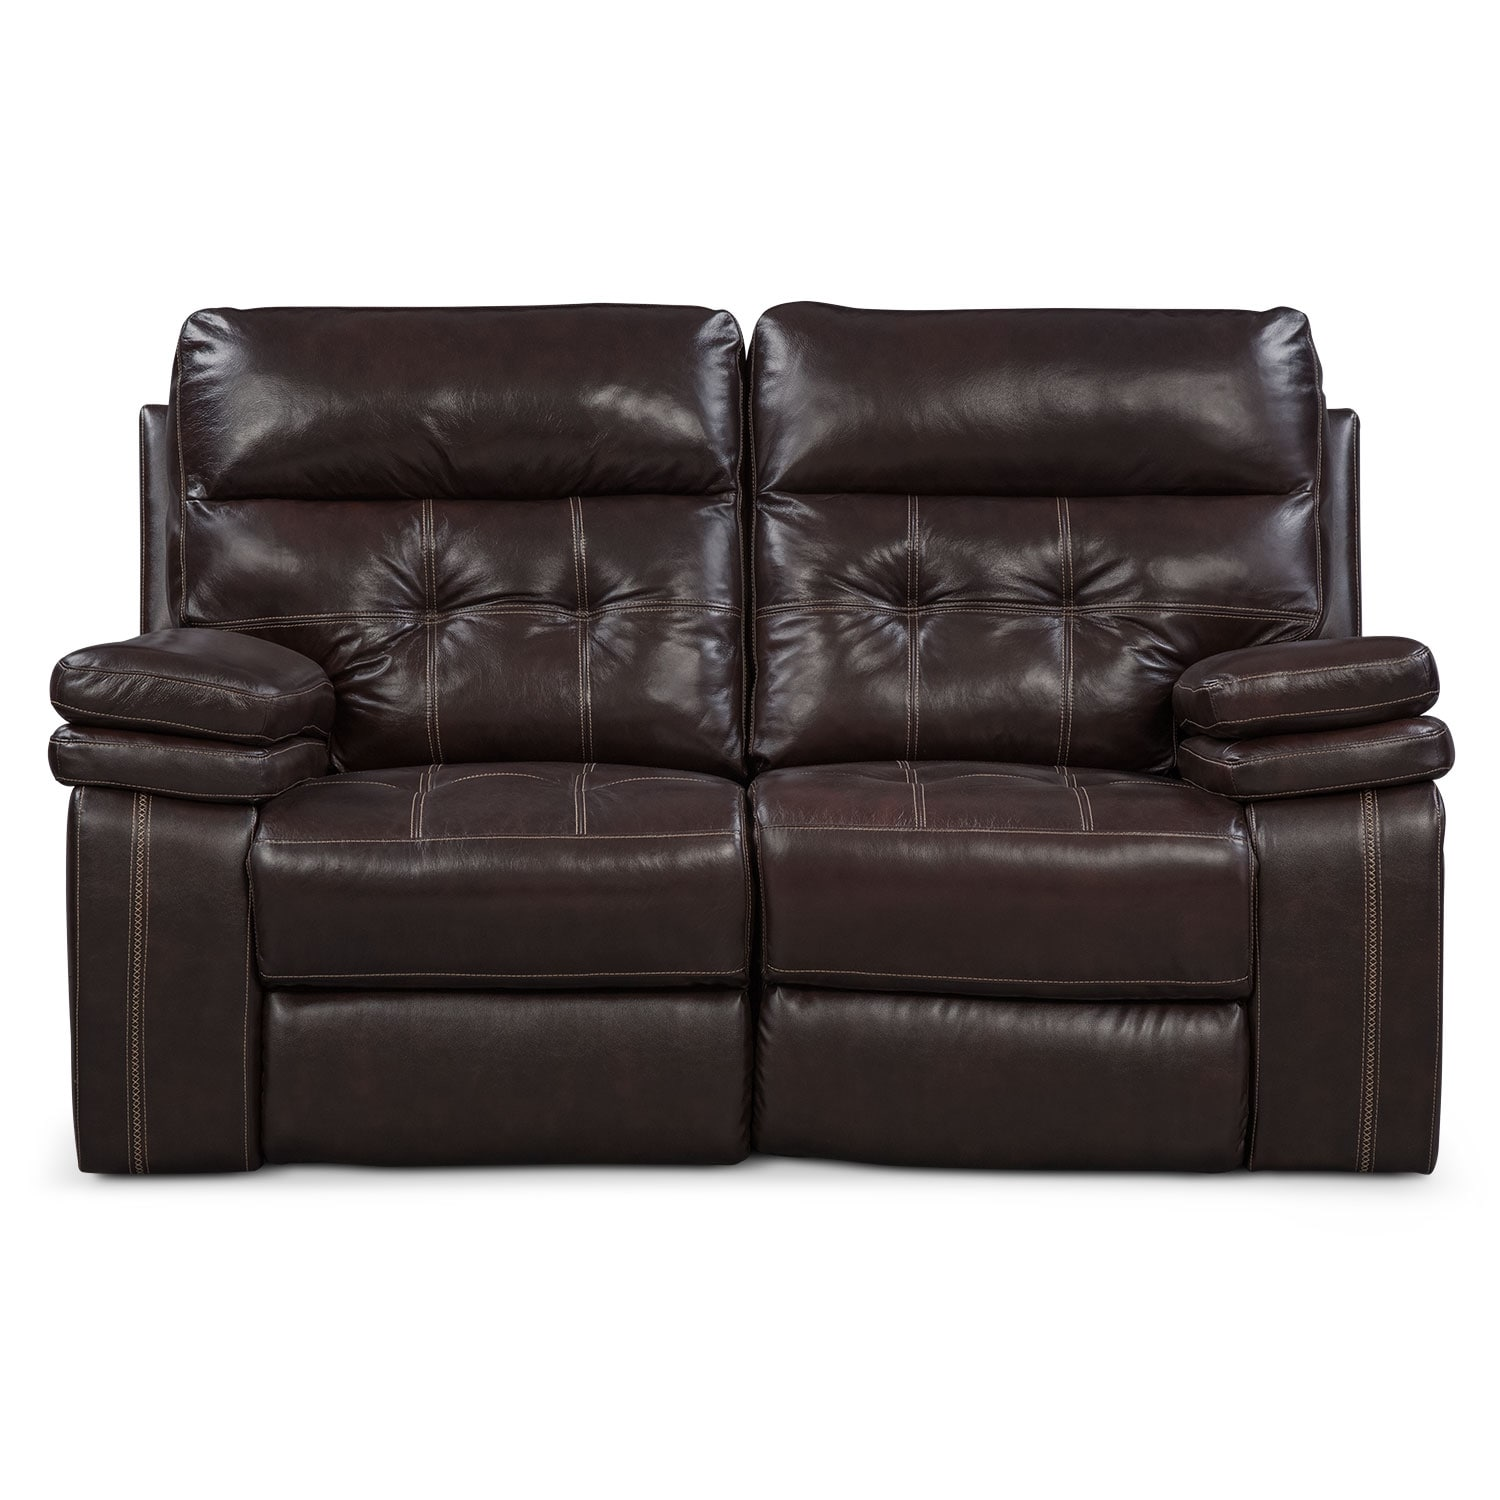 Brisco Power Reclining Loveseat Brown American Signature Furniture